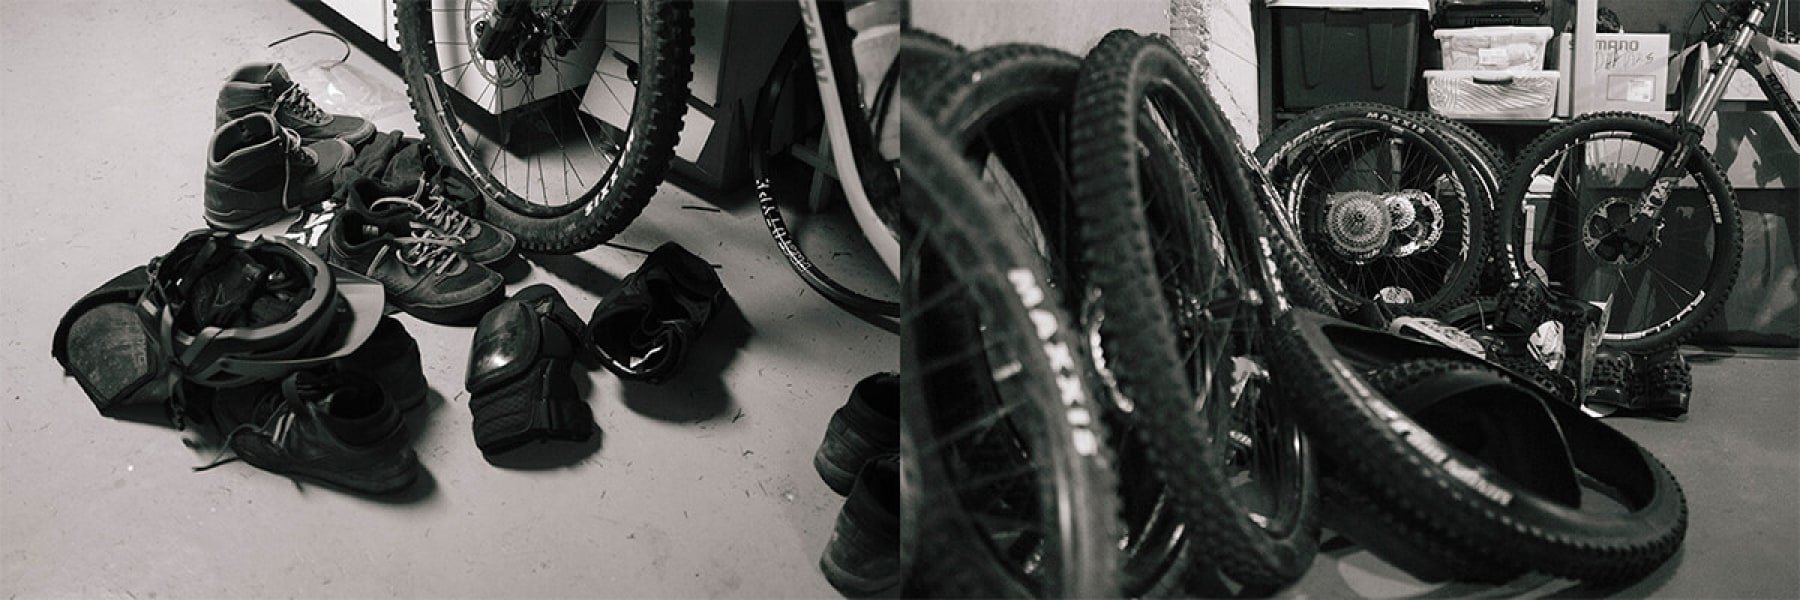 Shoes and tires